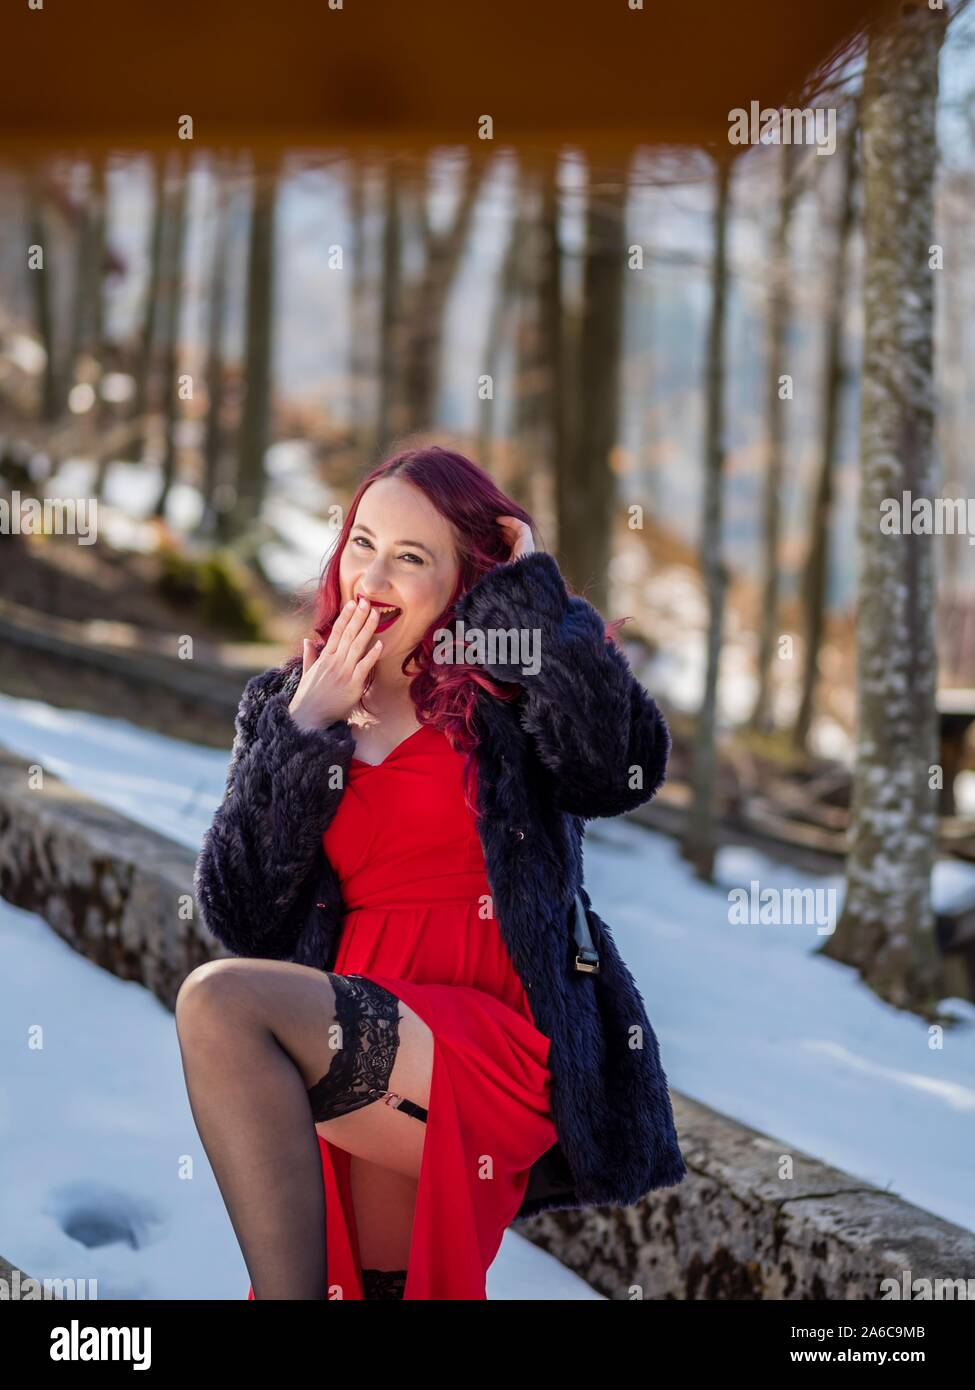 Exposing leg thigh nylon Black stockings with suspenders slitted Red long dress Black Winter coat smiling shy looking at camera hand cover mouth Stock Photo